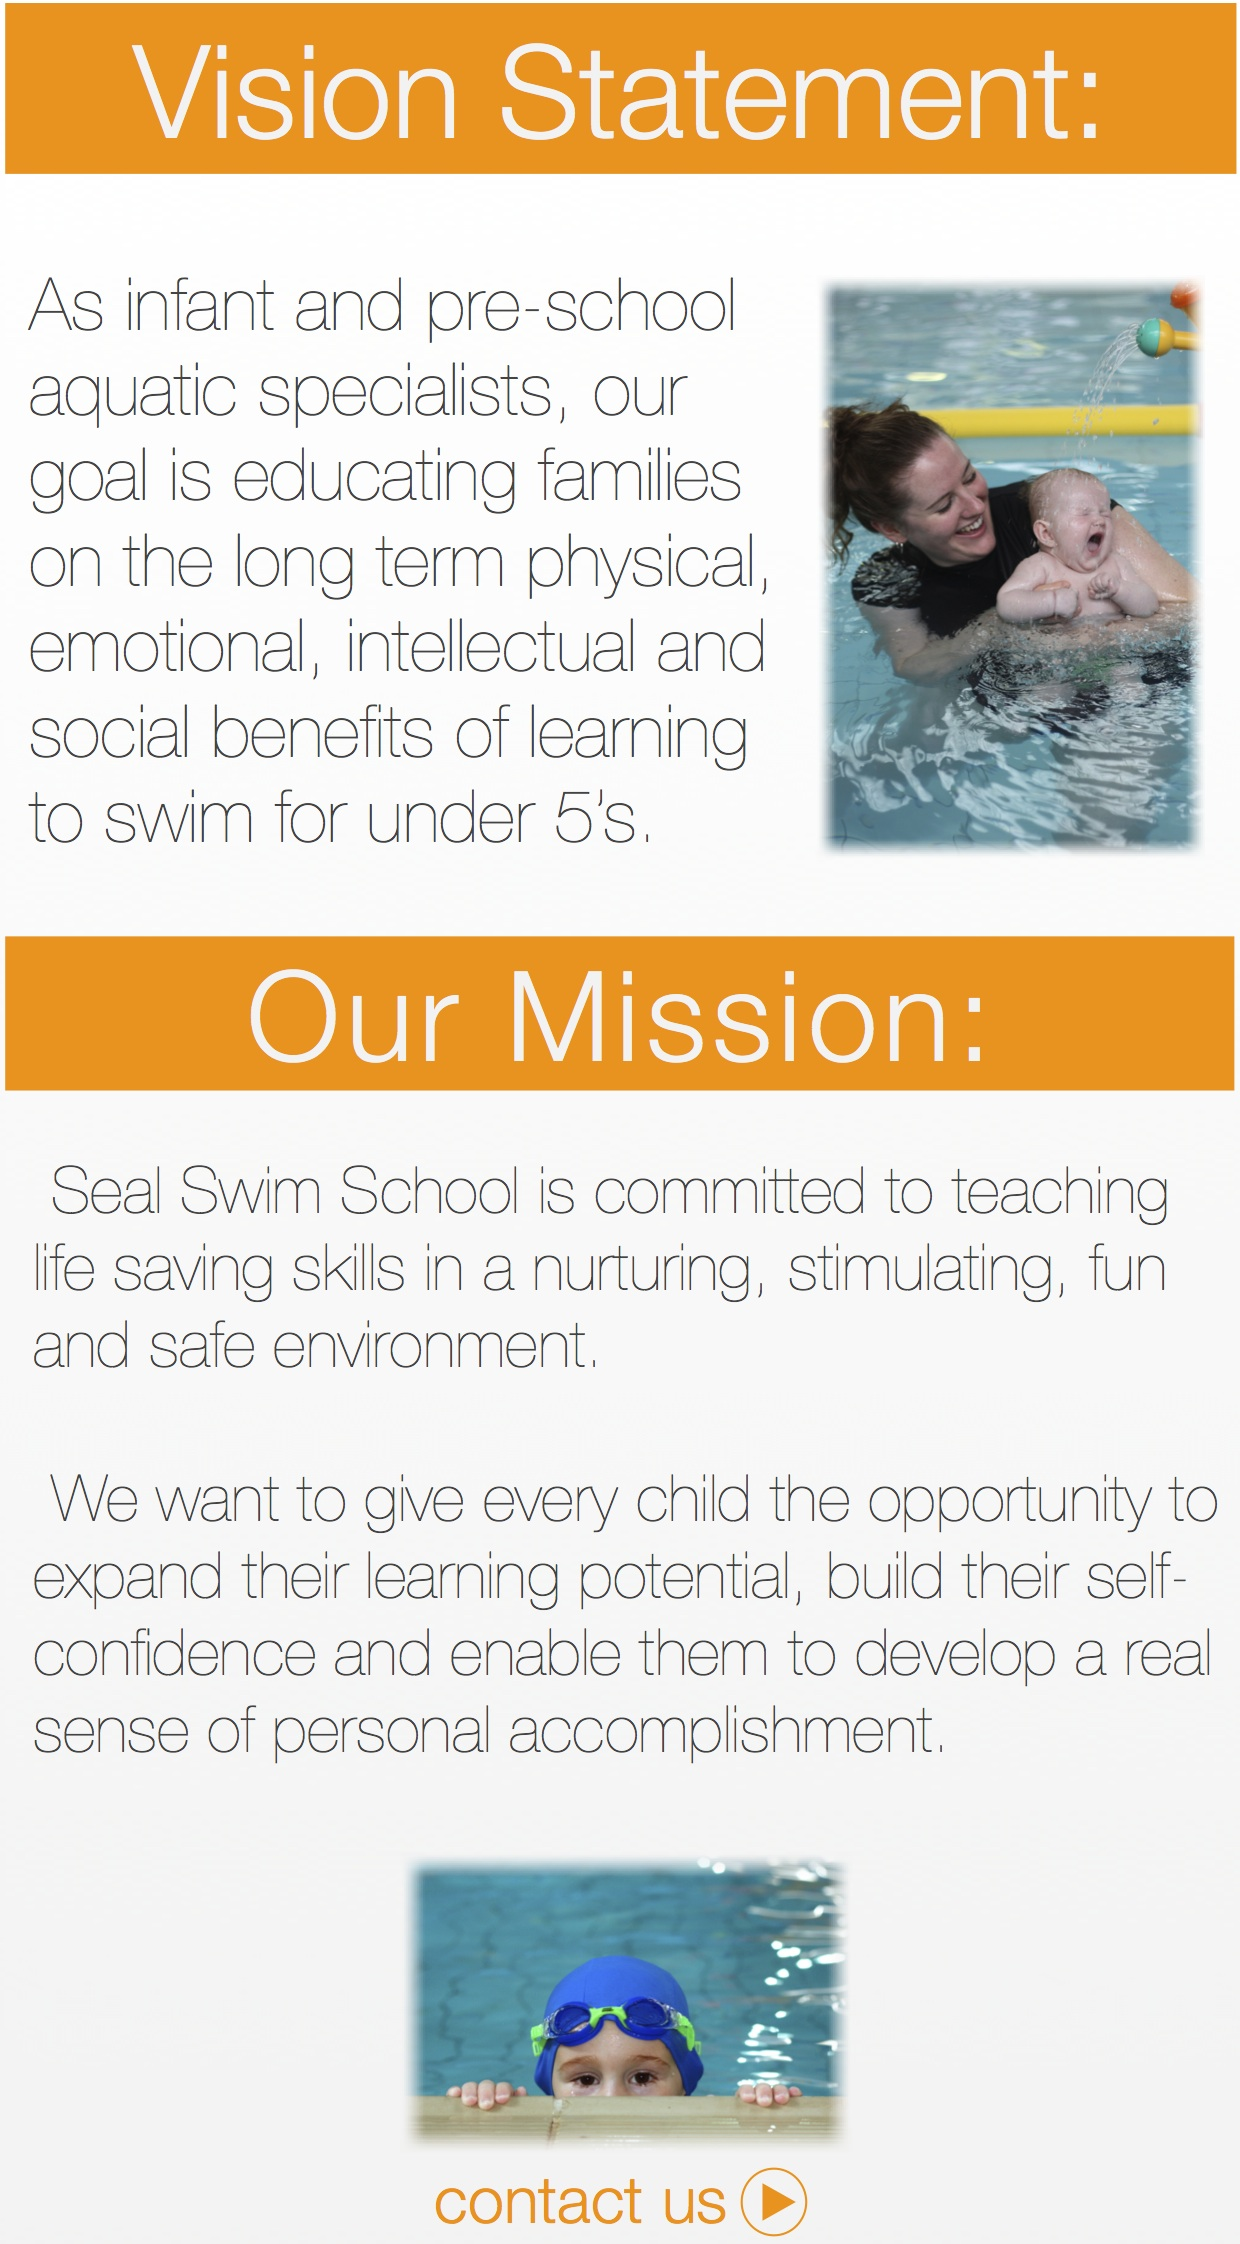 As infant and pre-school aquatic specialists, our goal is educating families on the long term physical, emotional, intellectual and social benefits of learning to swim for under 5's.  Seal Swim School is committed to teaching life saving skills in a nurturing, stimulating, fun and safe environment.    We want to give every child the opportunity to expand their learning potential, build their self-confidence and enable them to develop a real sense of personal accomplishment.